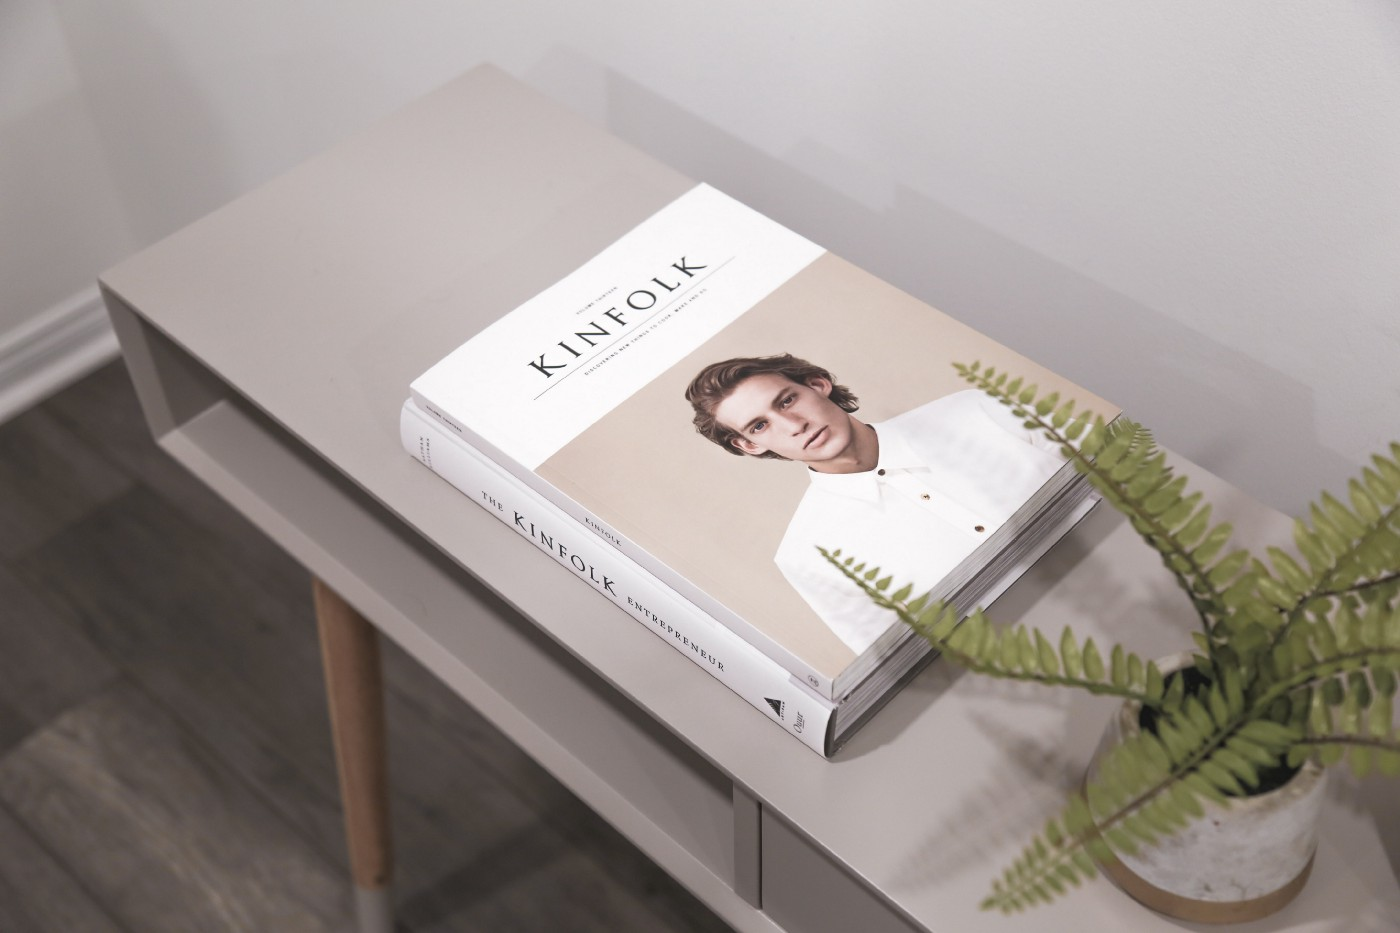 Kinfolk magazine and hardcover book stacked on a grey console table next to a potted fern